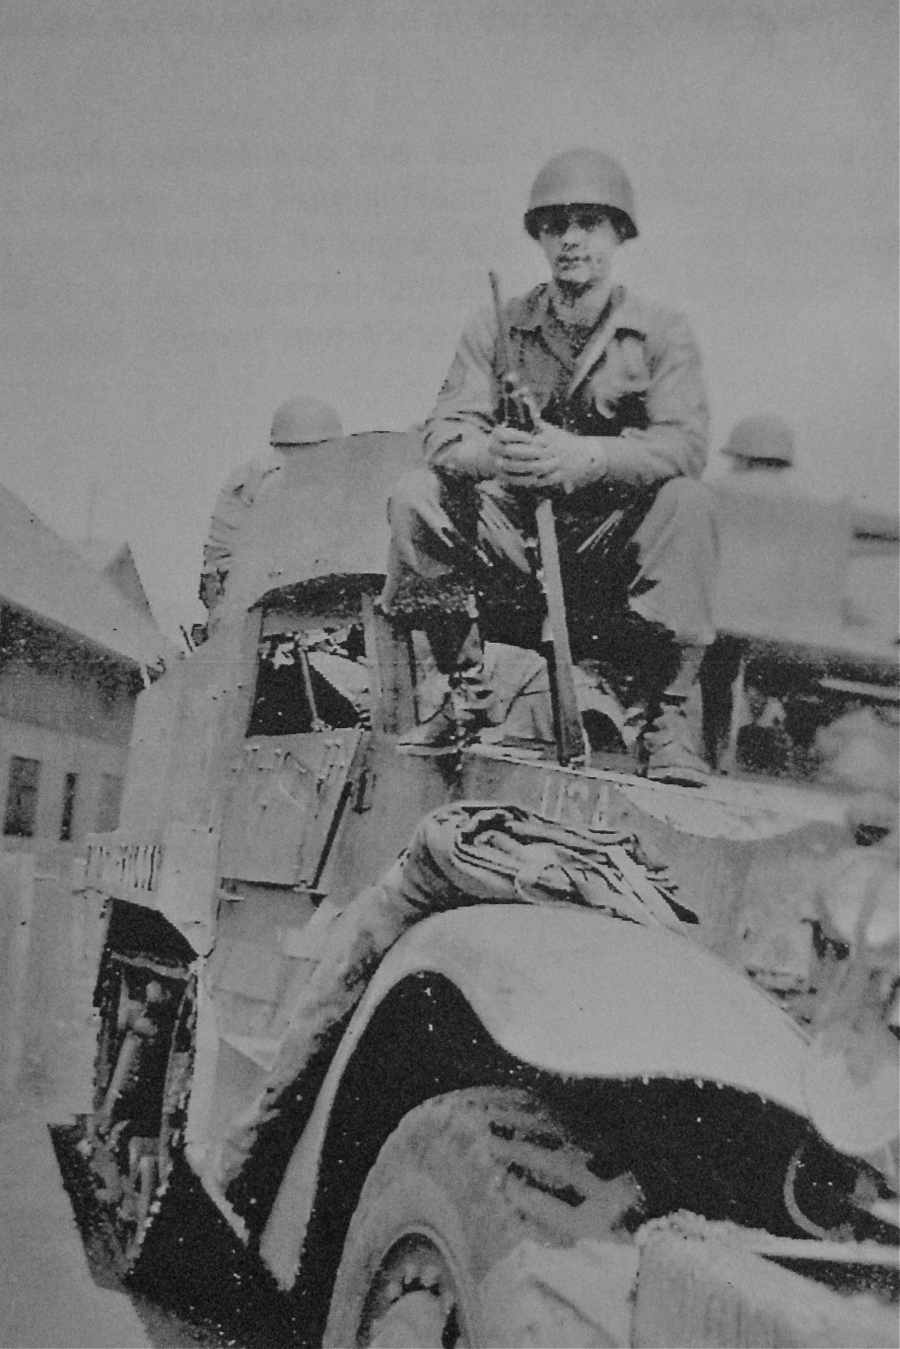 Staff Sgt. Steve Kruger sits on a half-track holding his carbine somewhere in France. He served in Europe during World War II with Gen. George Patton's 3rd Army. Photo provided